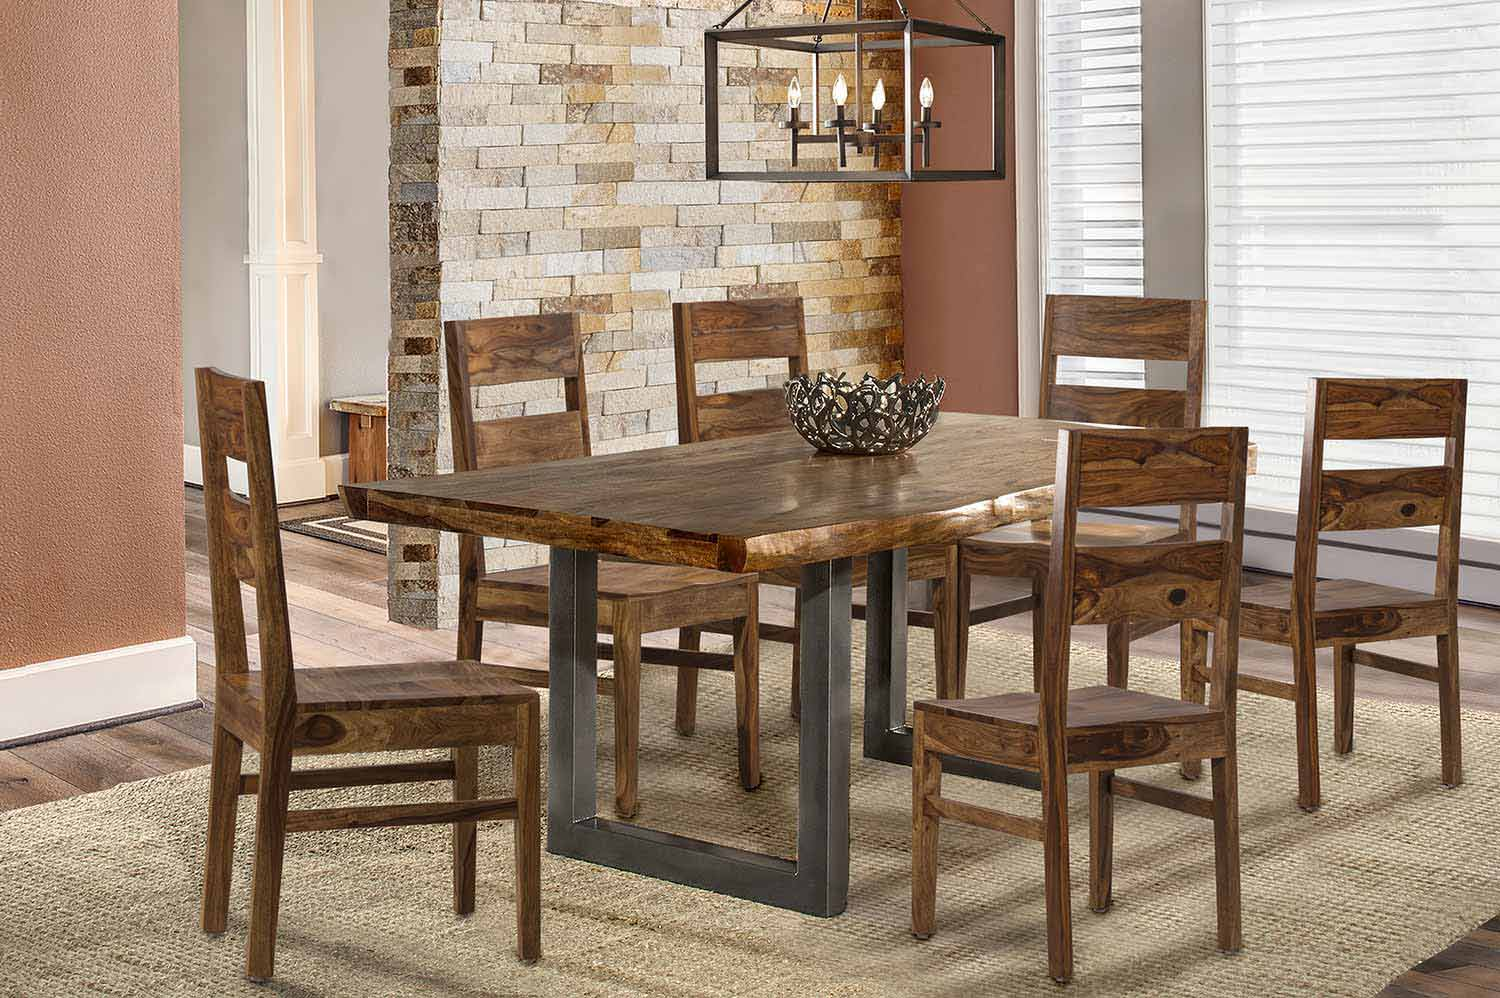 Hillsdale Emerson 7-Piece Rectangle Dining Set - Natural Sheesham